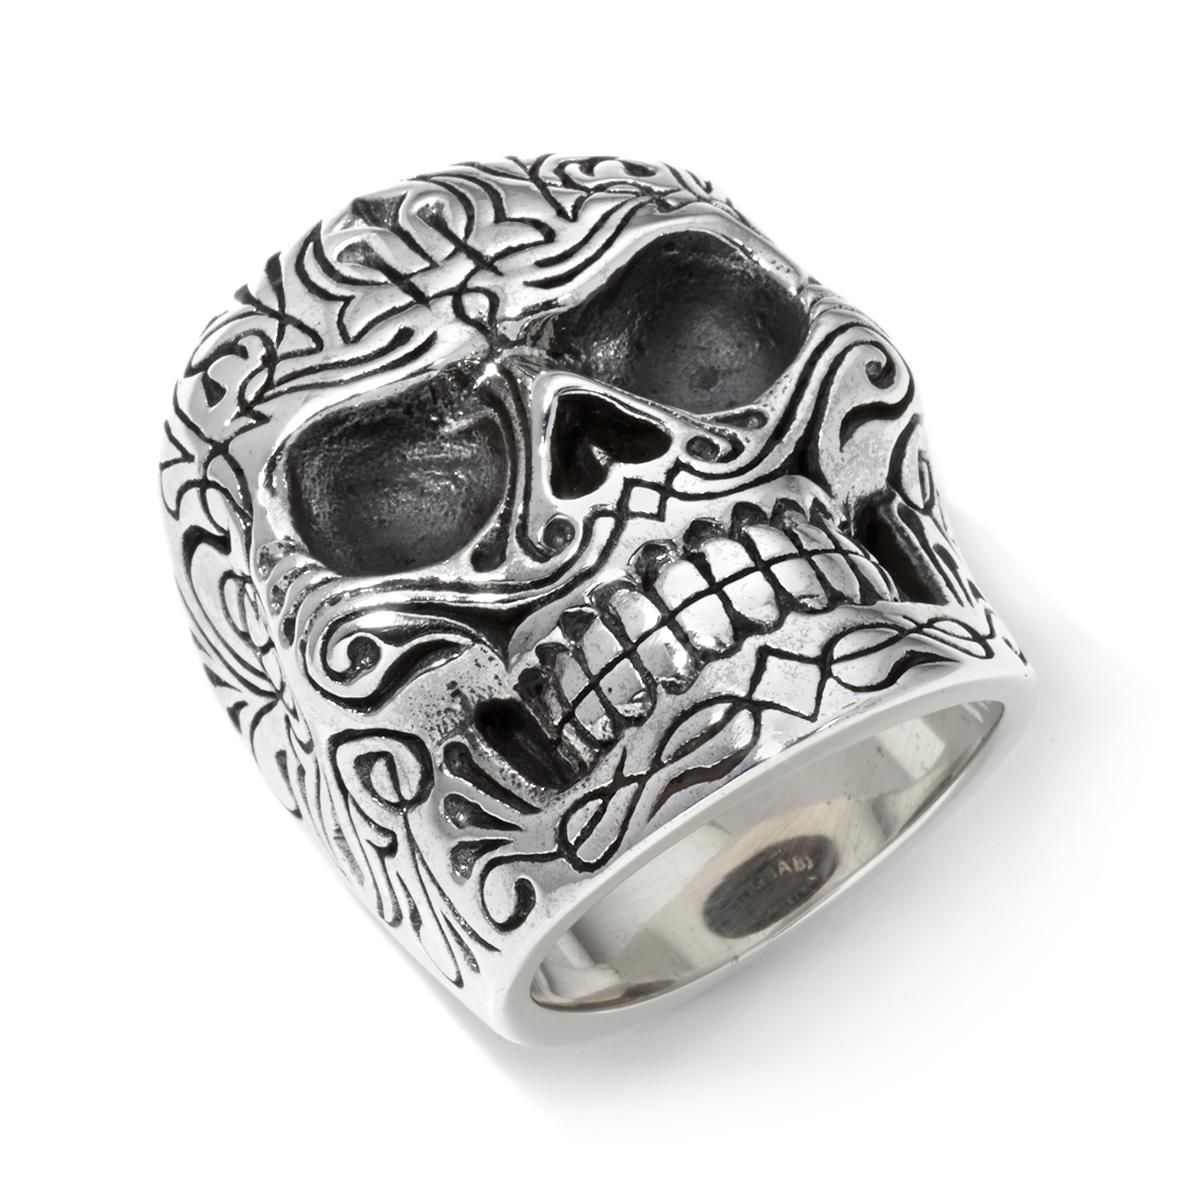 hsn wedding rings News Pirates of the Caribbean Collection from HSN Now Available